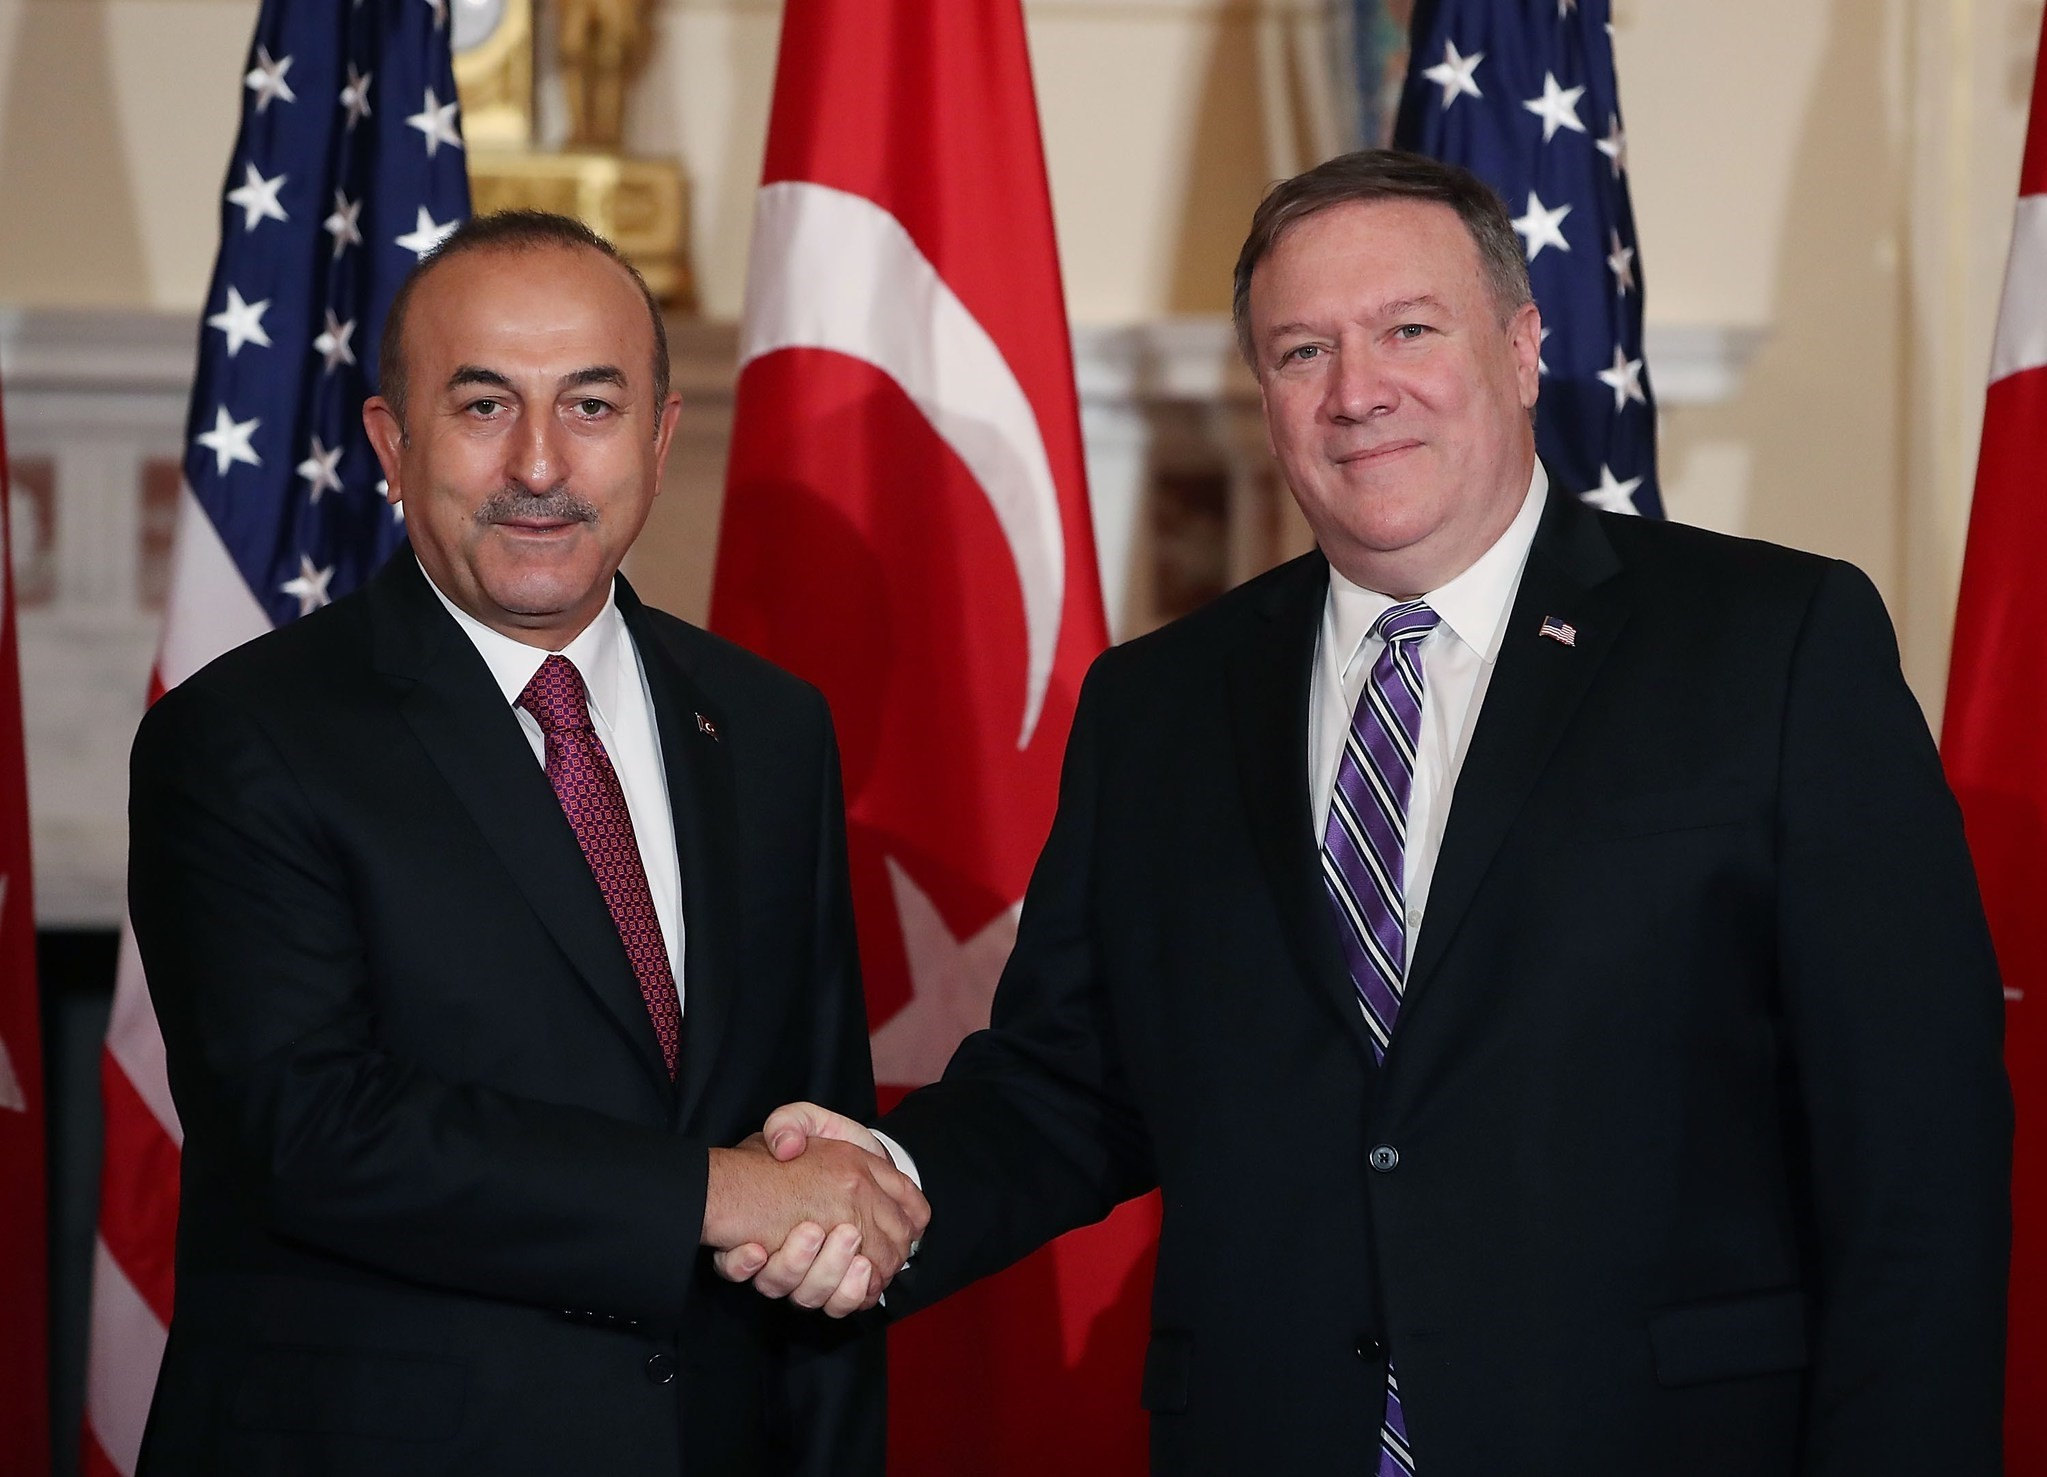 Secretary of State Mike Pompeo, right, greets Turkish Foreign Minister Mevlu00fct u00c7avuu015fou011flu before a meeting at the State Department, Washington, June 4.